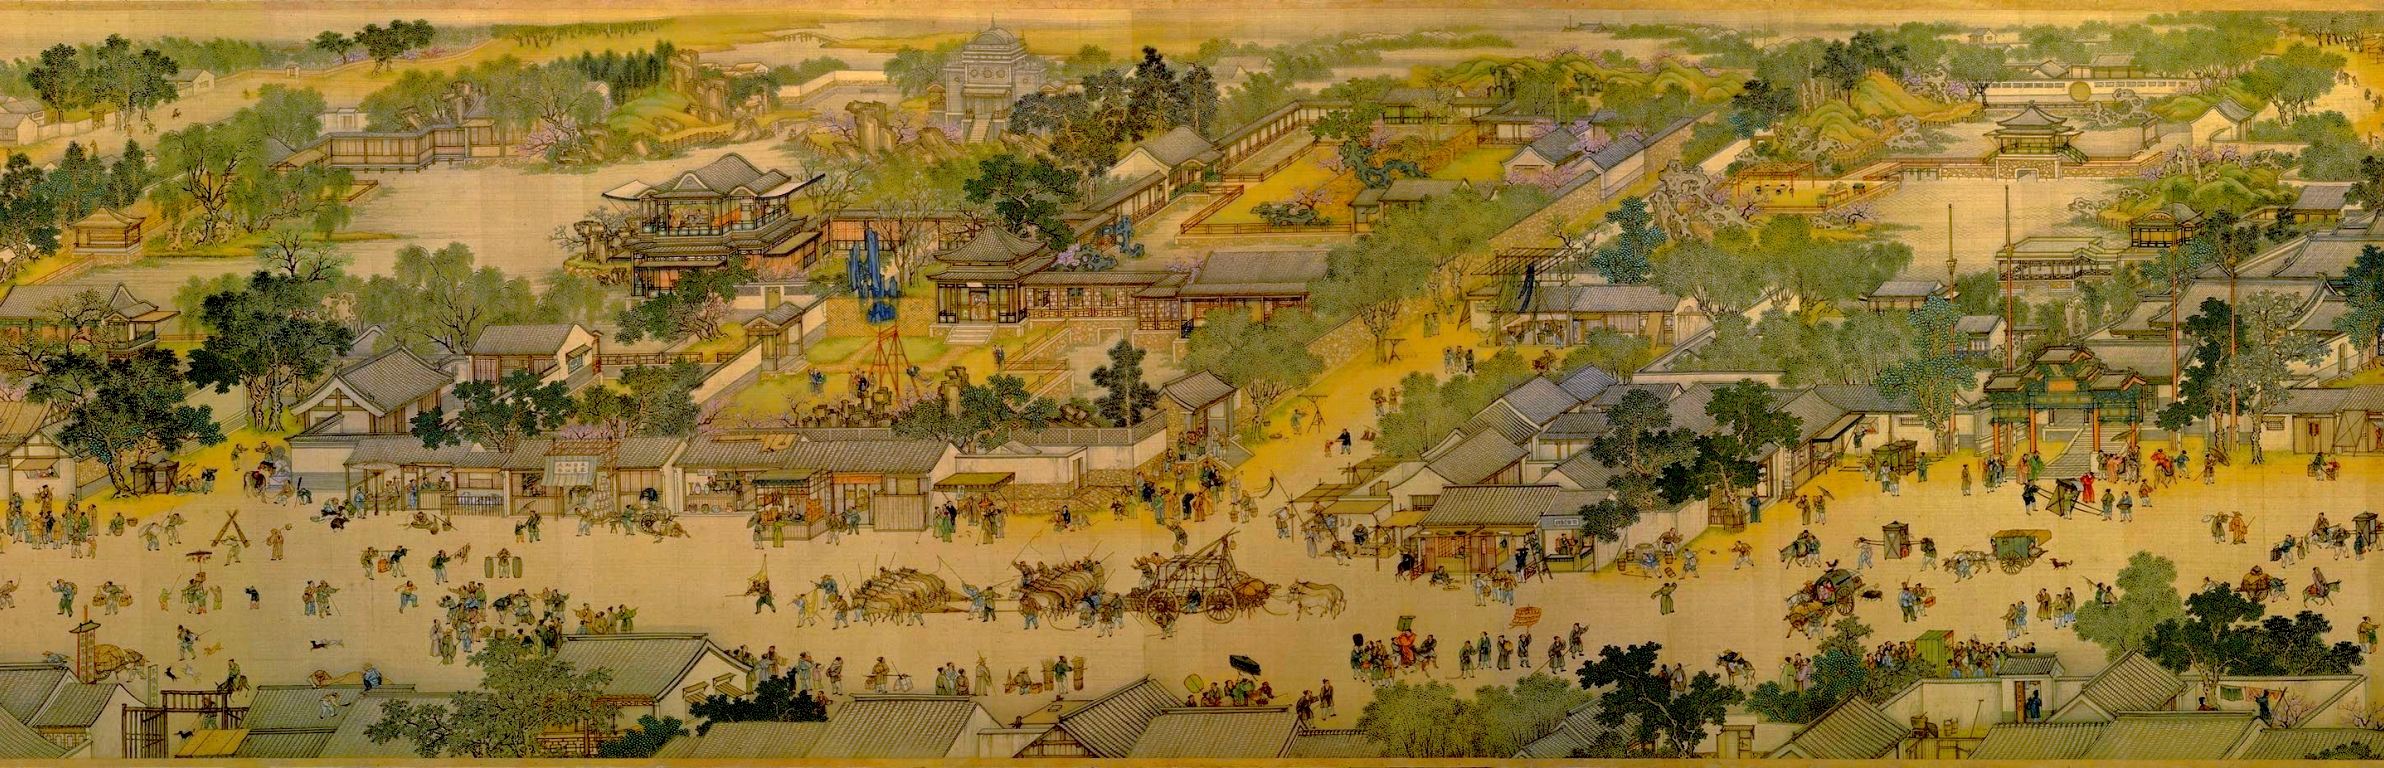 along-the-river-chinese-painting-oldskull